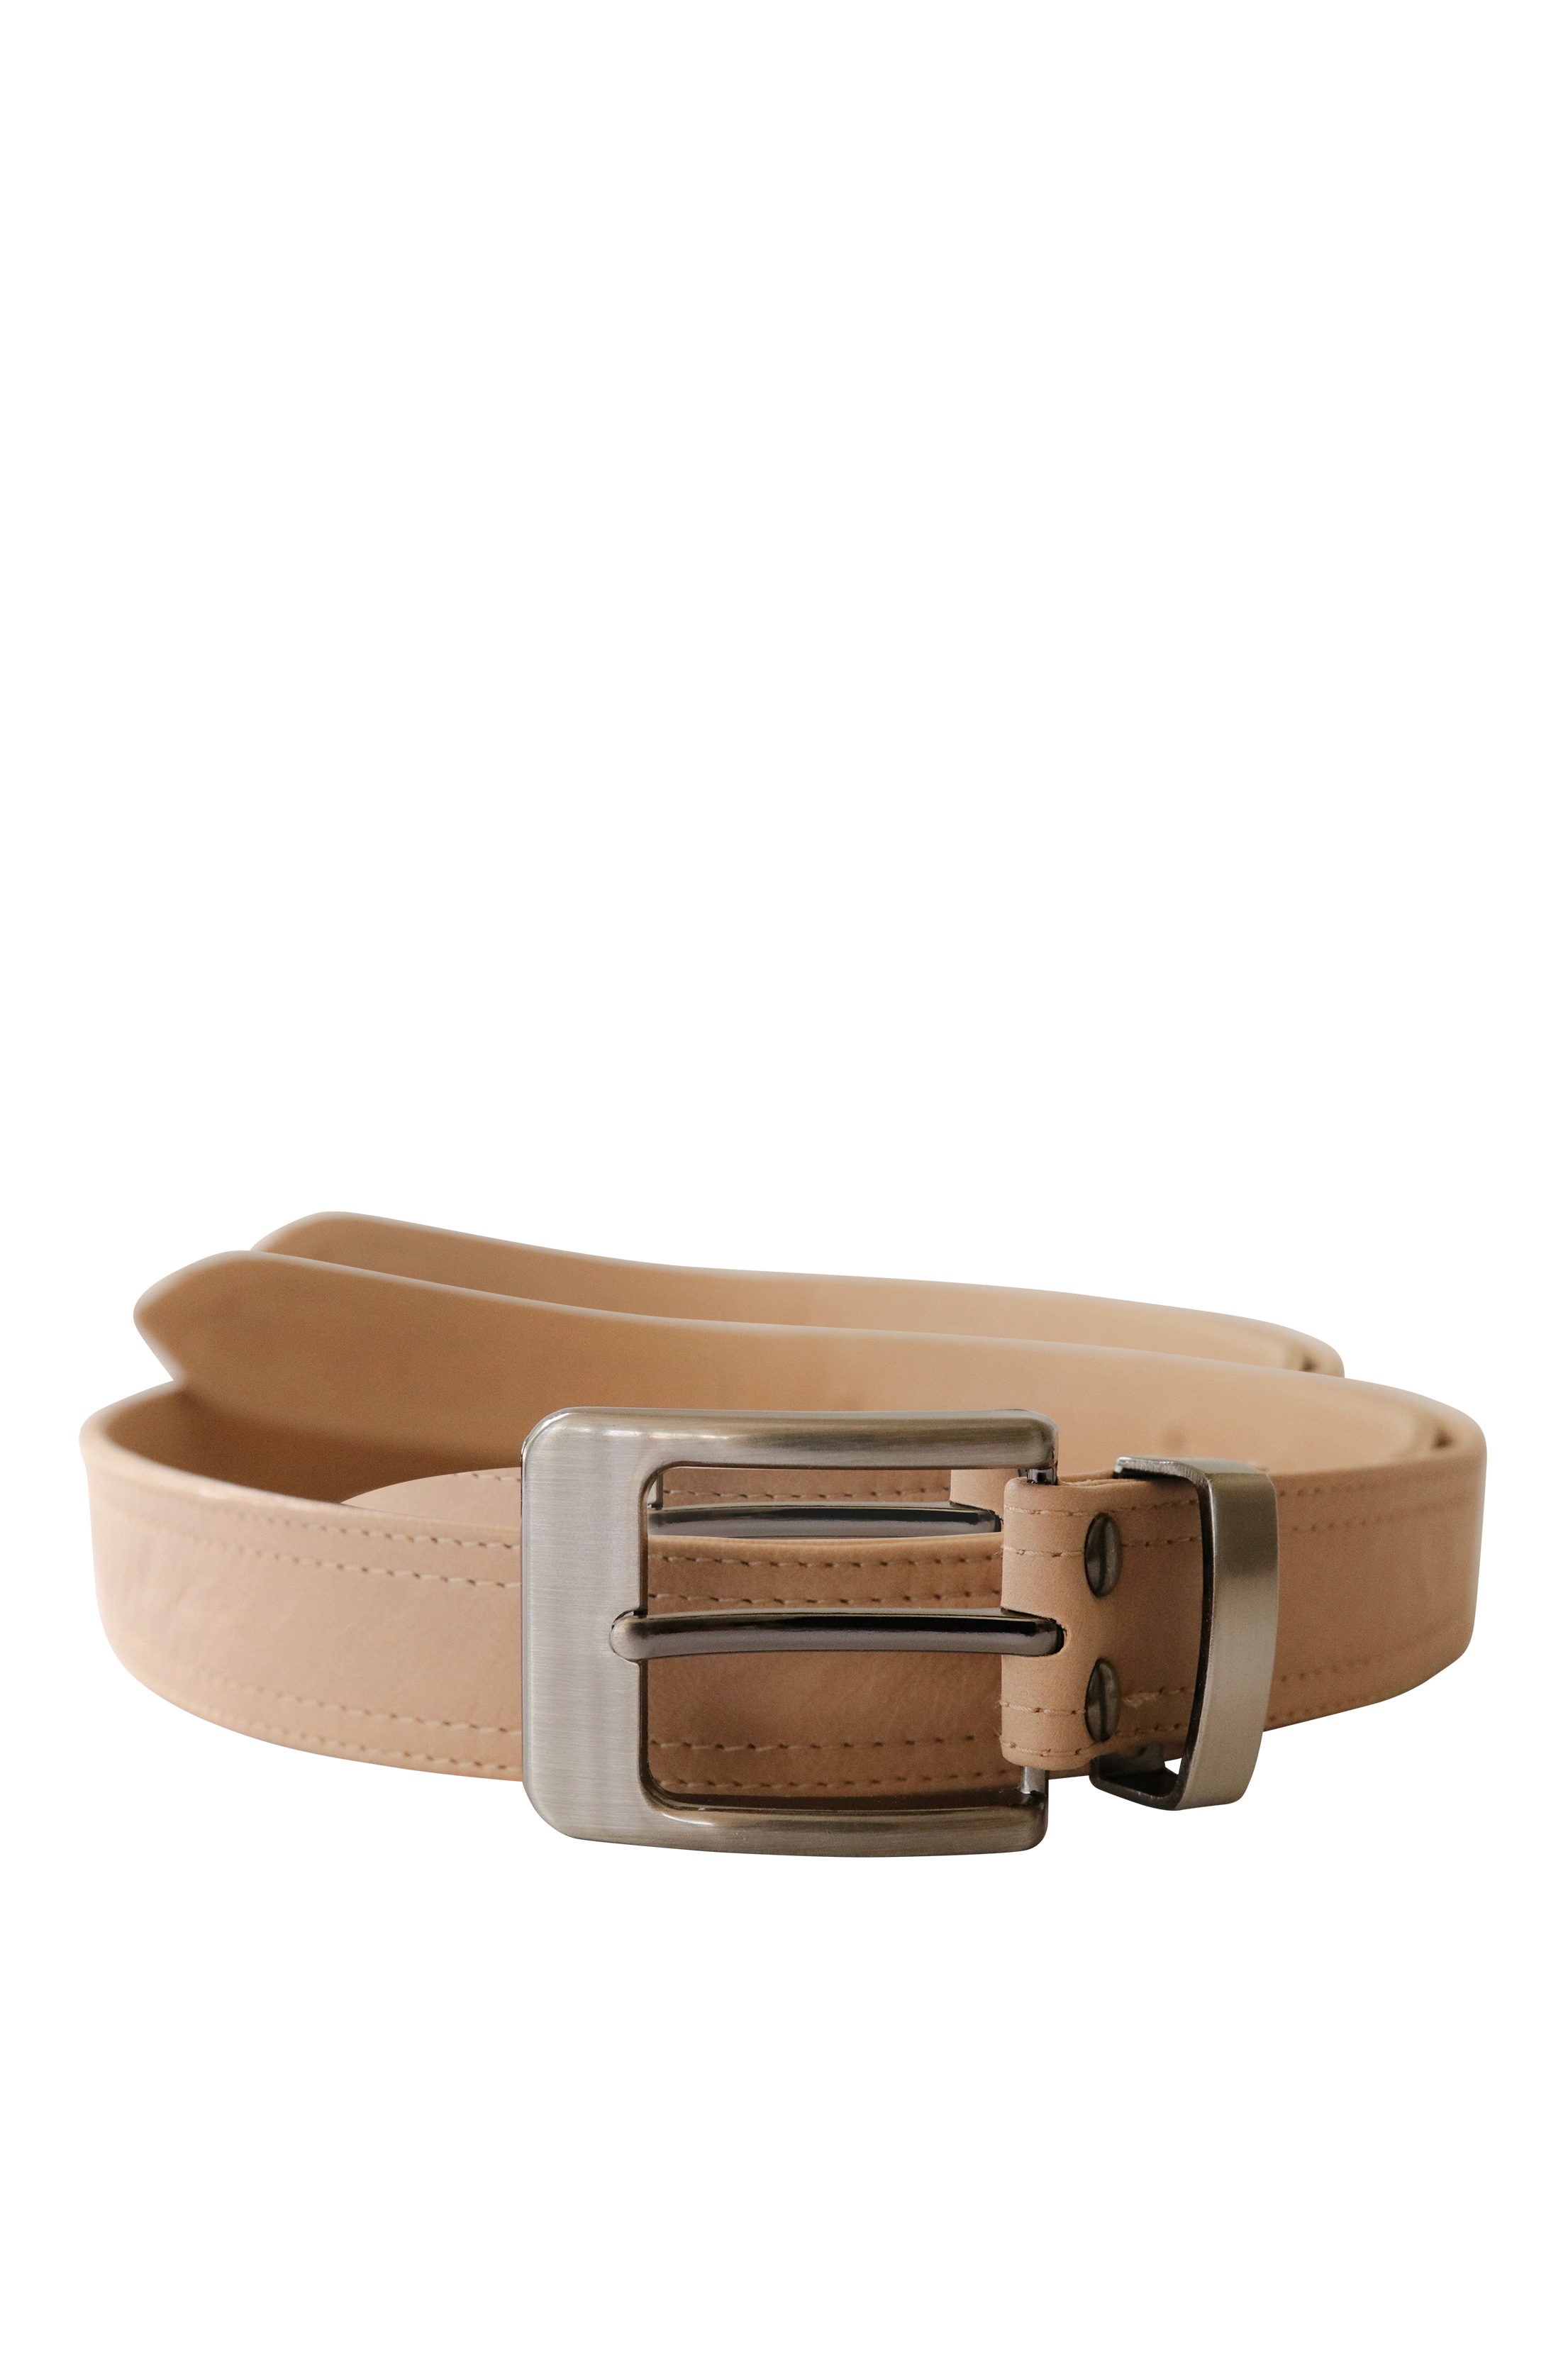 Live Like Lil Leather Belts - Tan